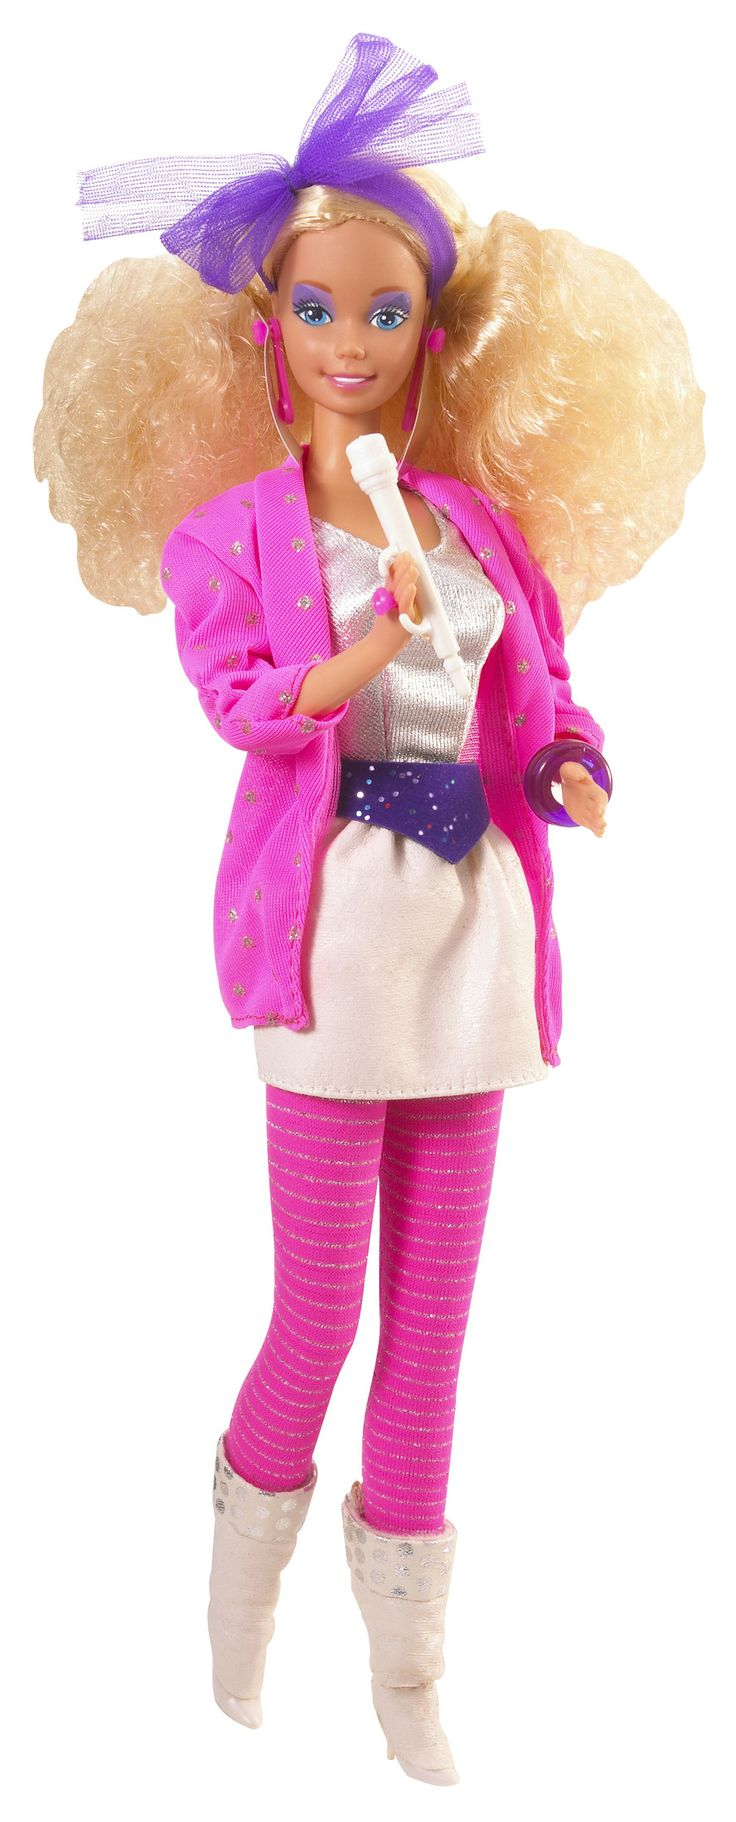 In 1986, Barbie was a rock star. Photo credit: Mattel Inc.